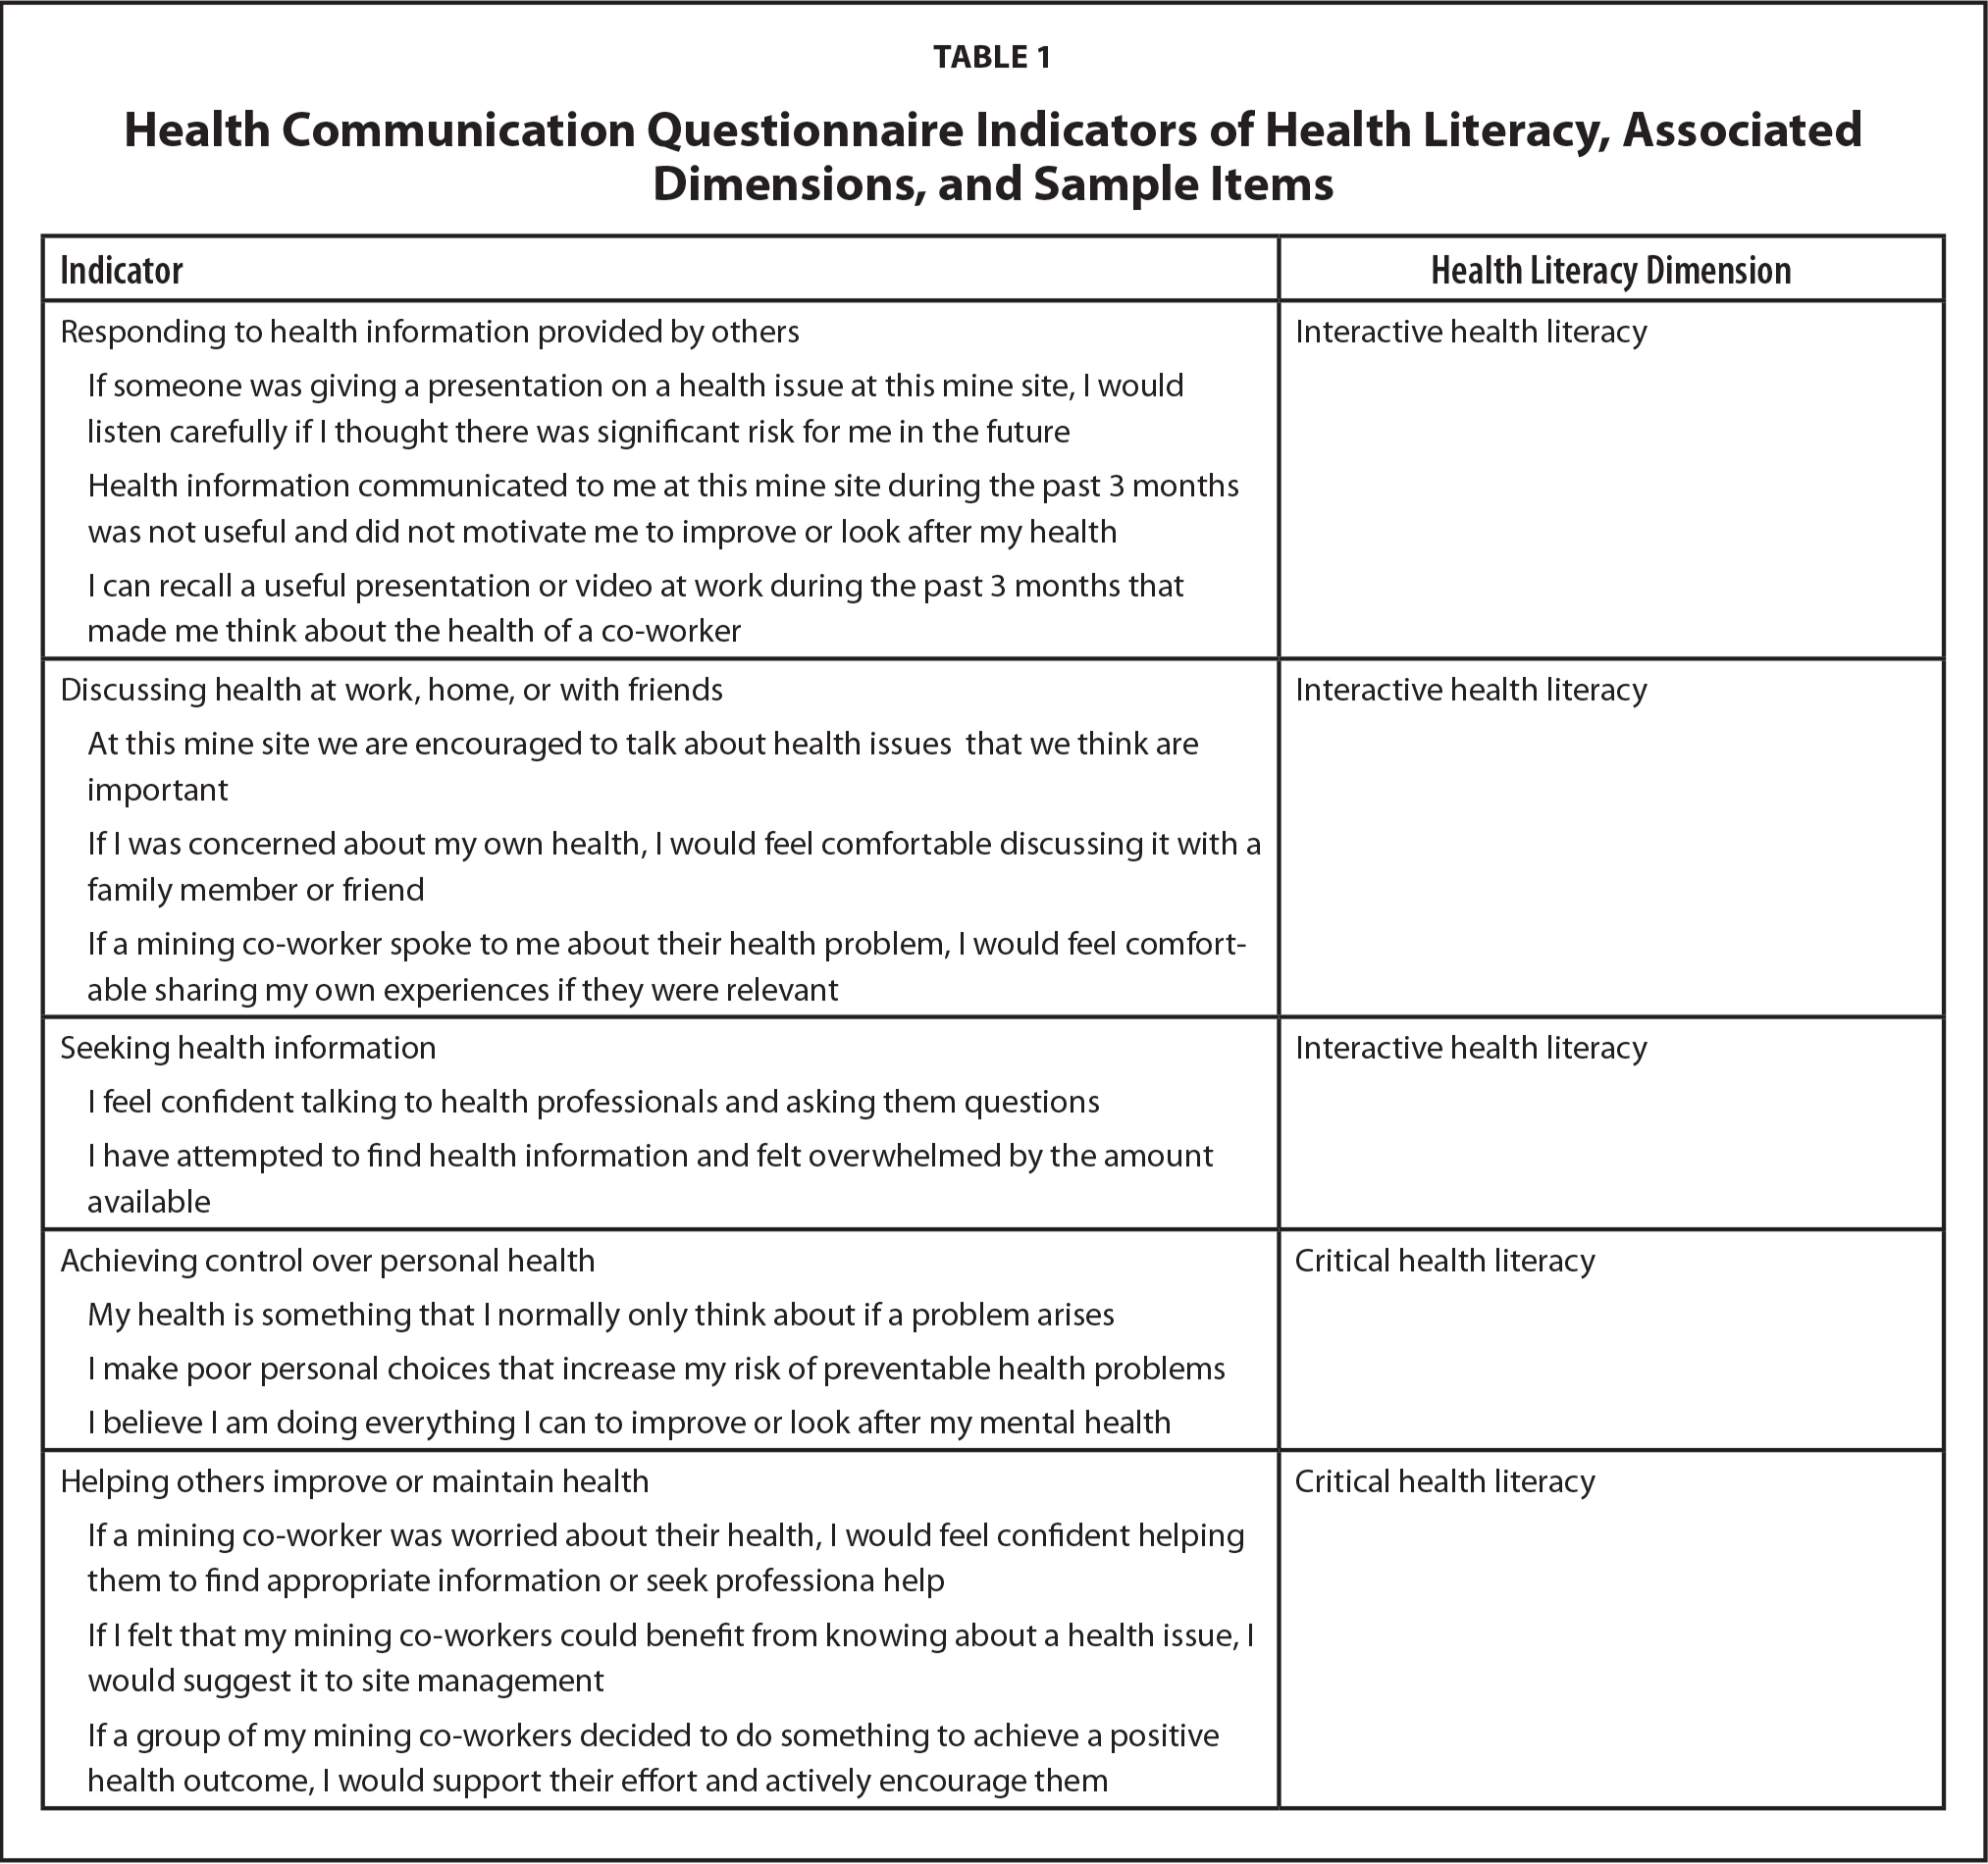 Health Communication Questionnaire Indicators of Health Literacy, Associated Dimensions, and Sample Items